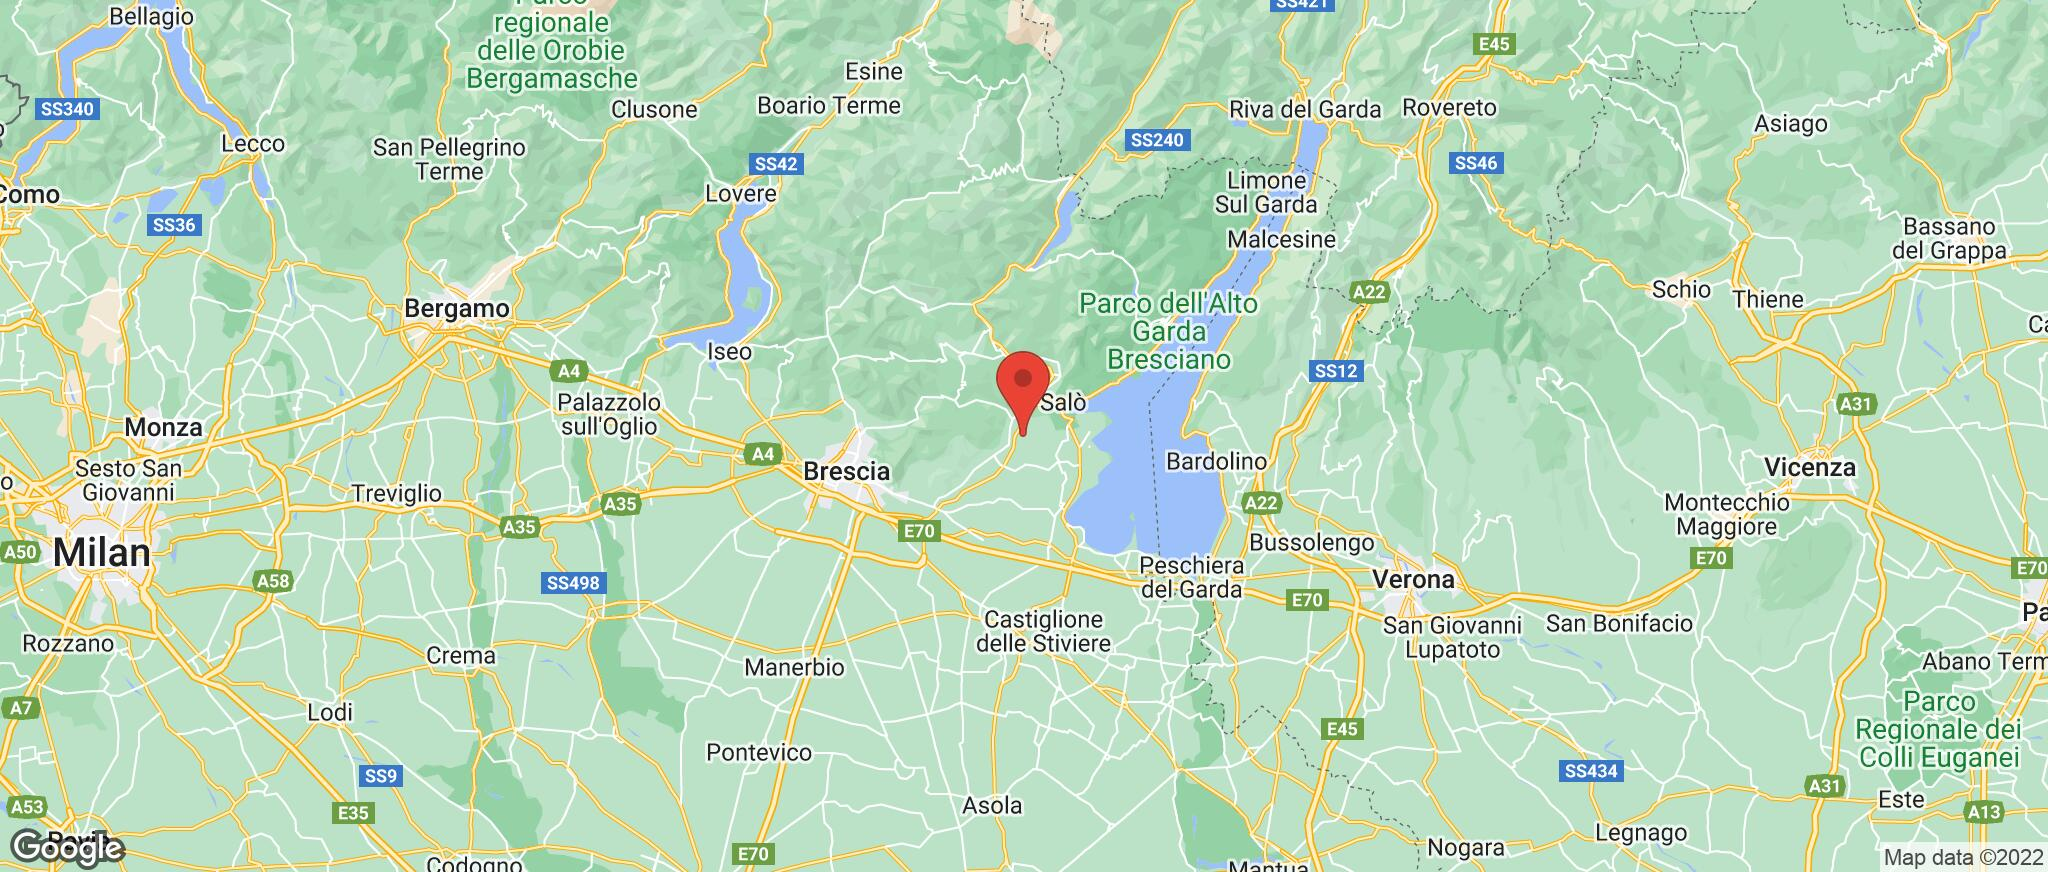 Map showing the location of Limone